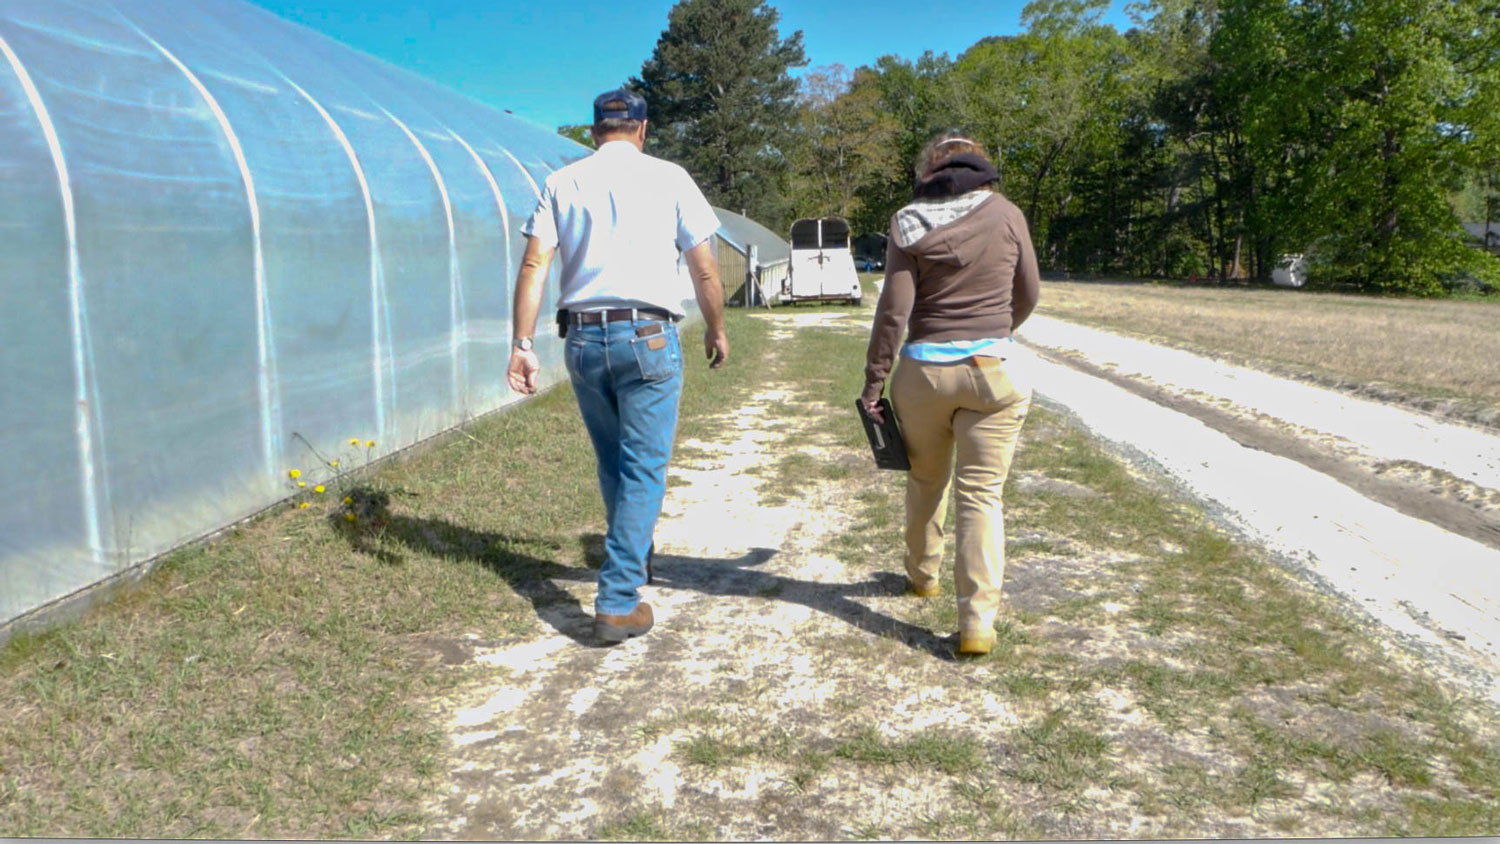 Two people walking on a farm